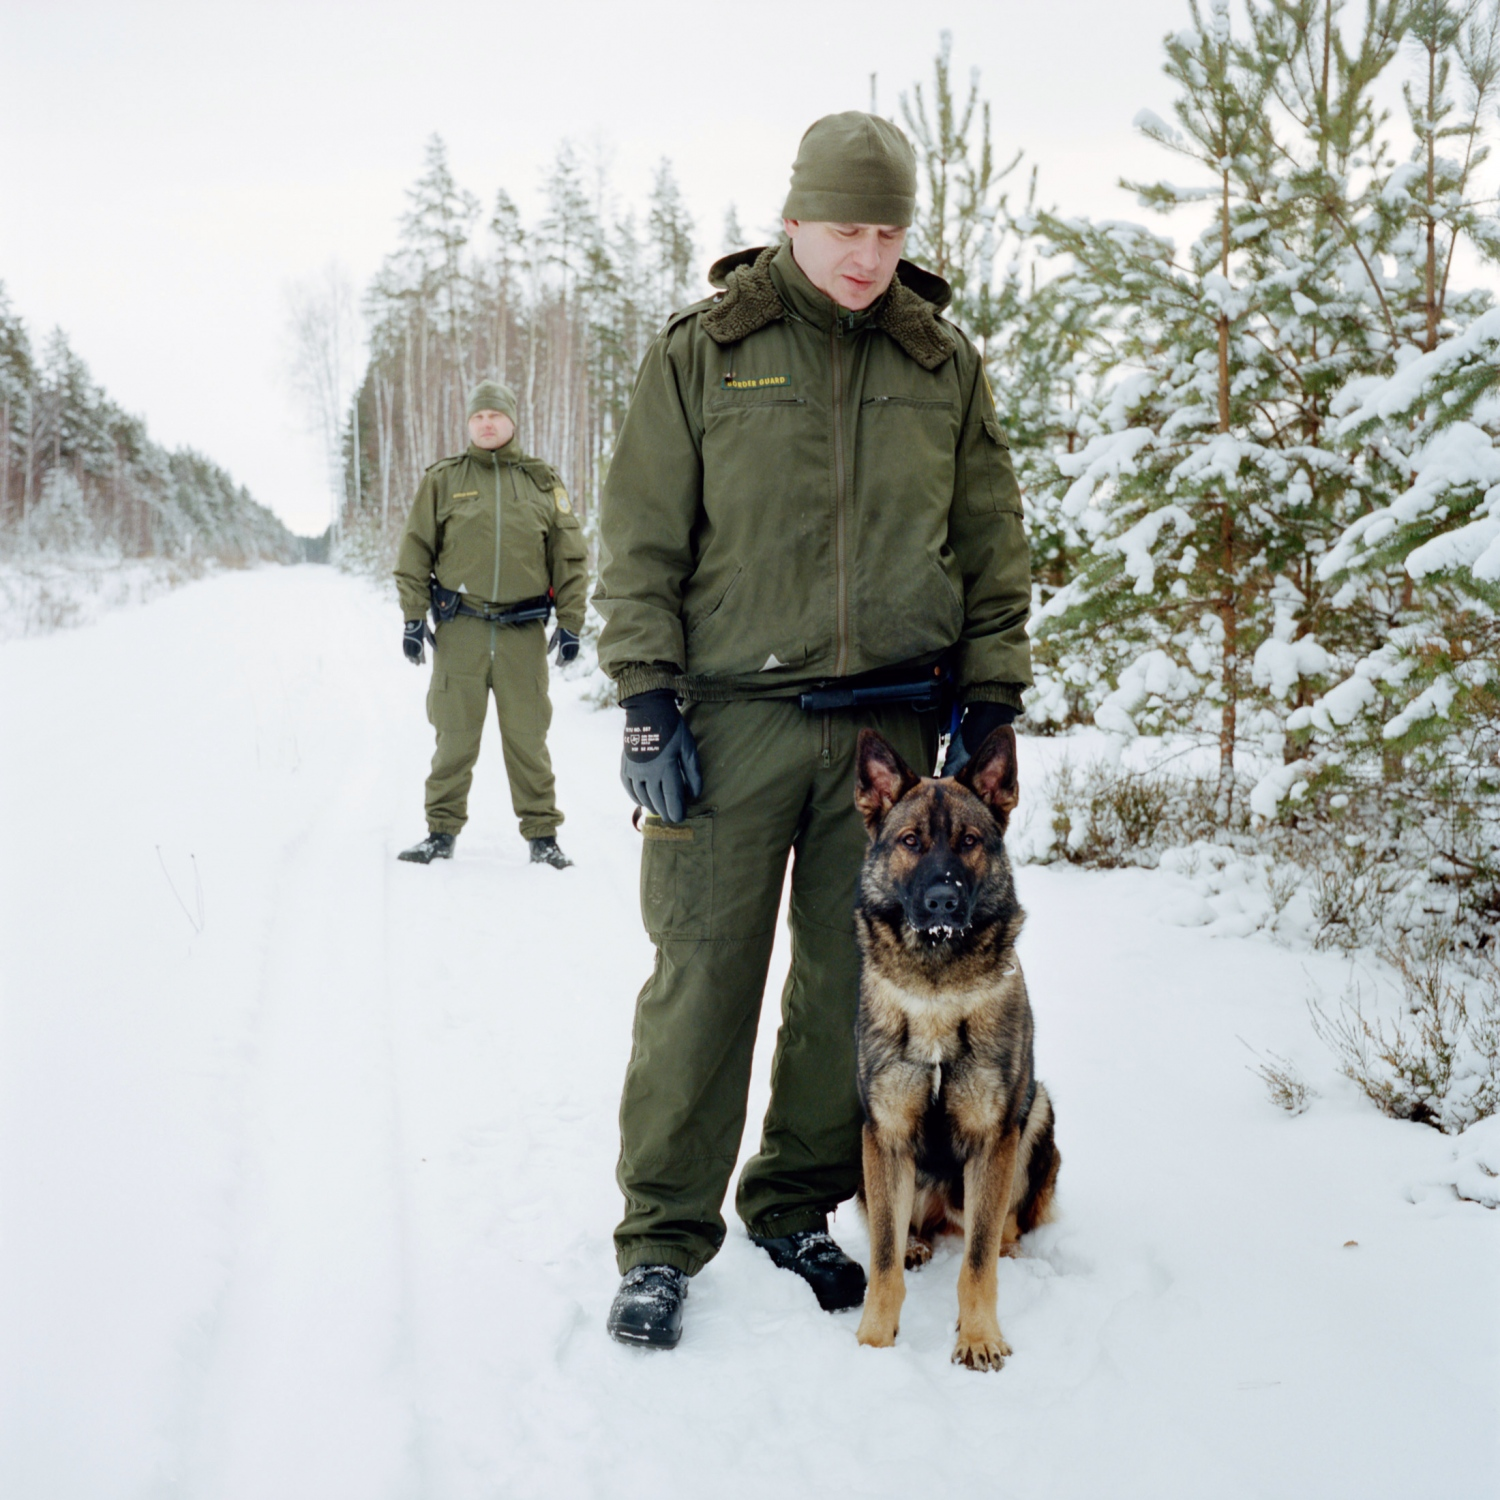 At the Estonian-Russian border, the Värska unit border guards walk 10 km along the border with a dog trained to detect any suspicious footsteps from an illegal trespassing. Before 1991, the whole Setoma was united, either under the USSR, Estonia or Russia.